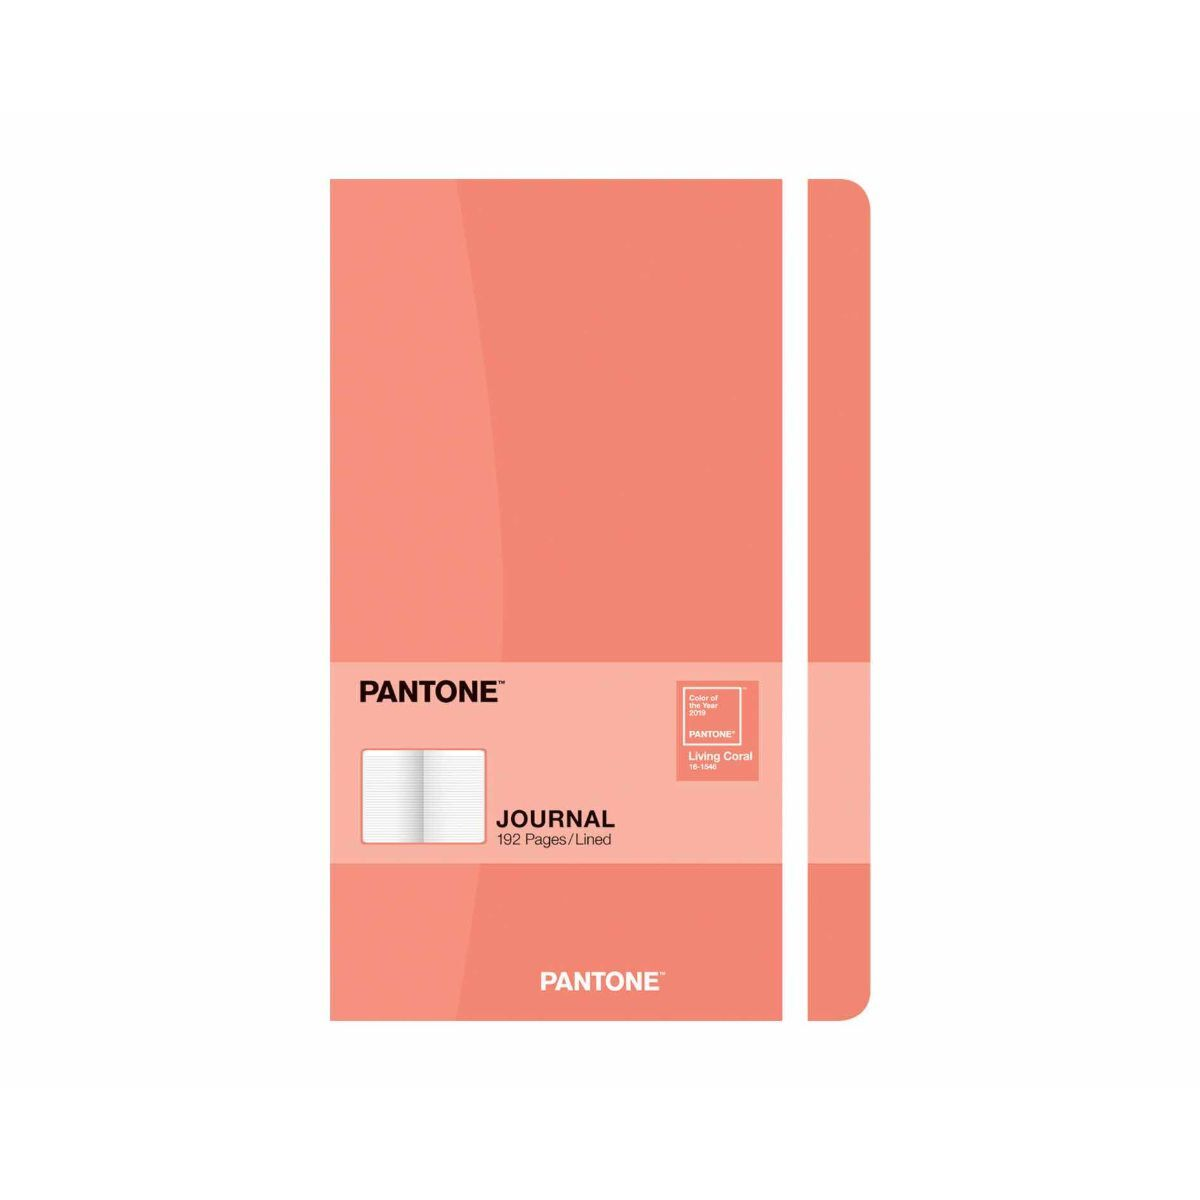 PANTONE Compact Journal Ruled 192 Pages